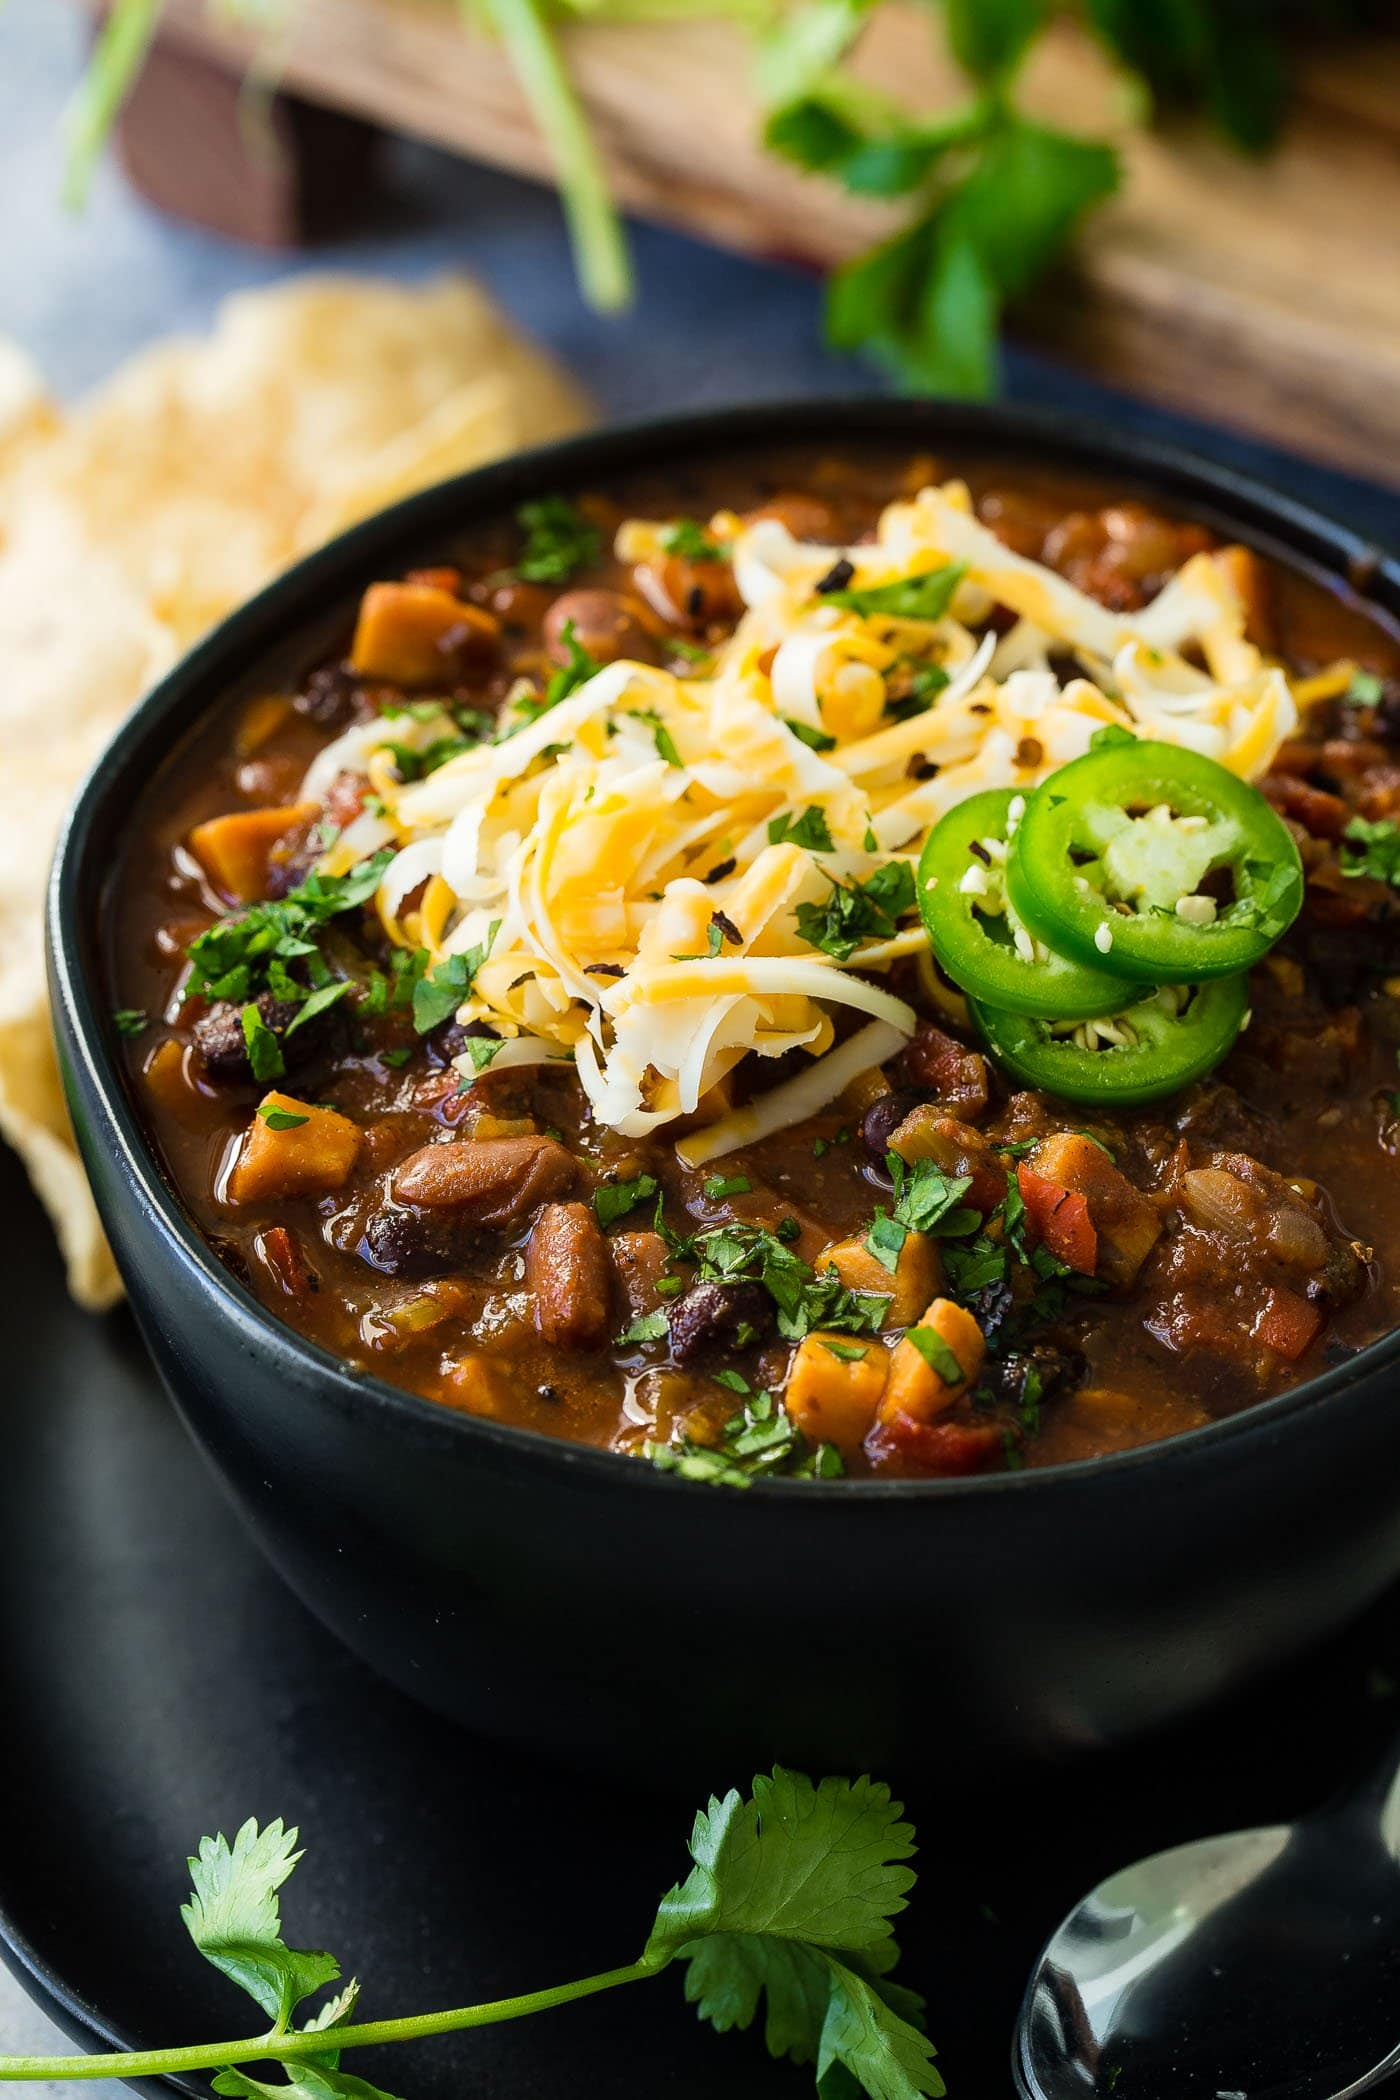 A photo of a bowl of vegetarian chili topped with shredded cheese and slices of fresh jalapeno.